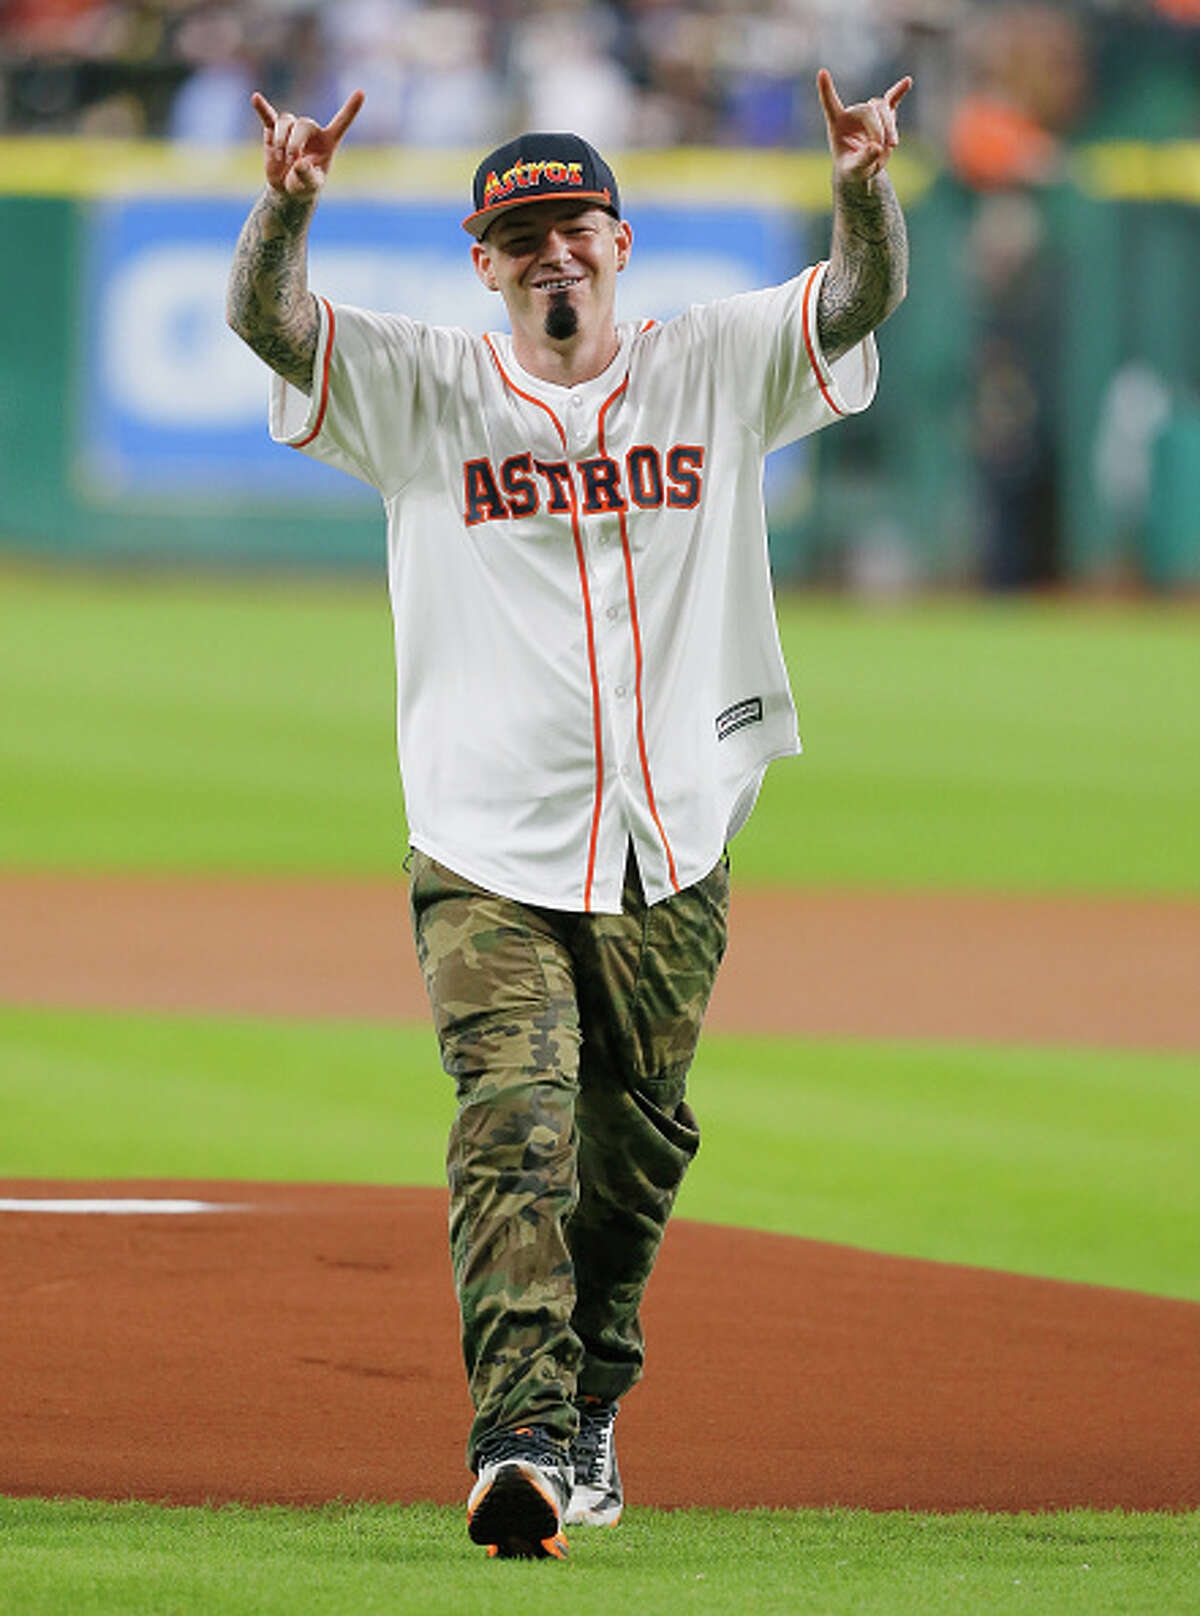 Paul Wall In honor of the Astros making it to the World Series, the Houston rap artist offered free grillz to the entire team. Browse through the photos for more of the Houston rapper. (Photo by Bob Levey/Getty Images)